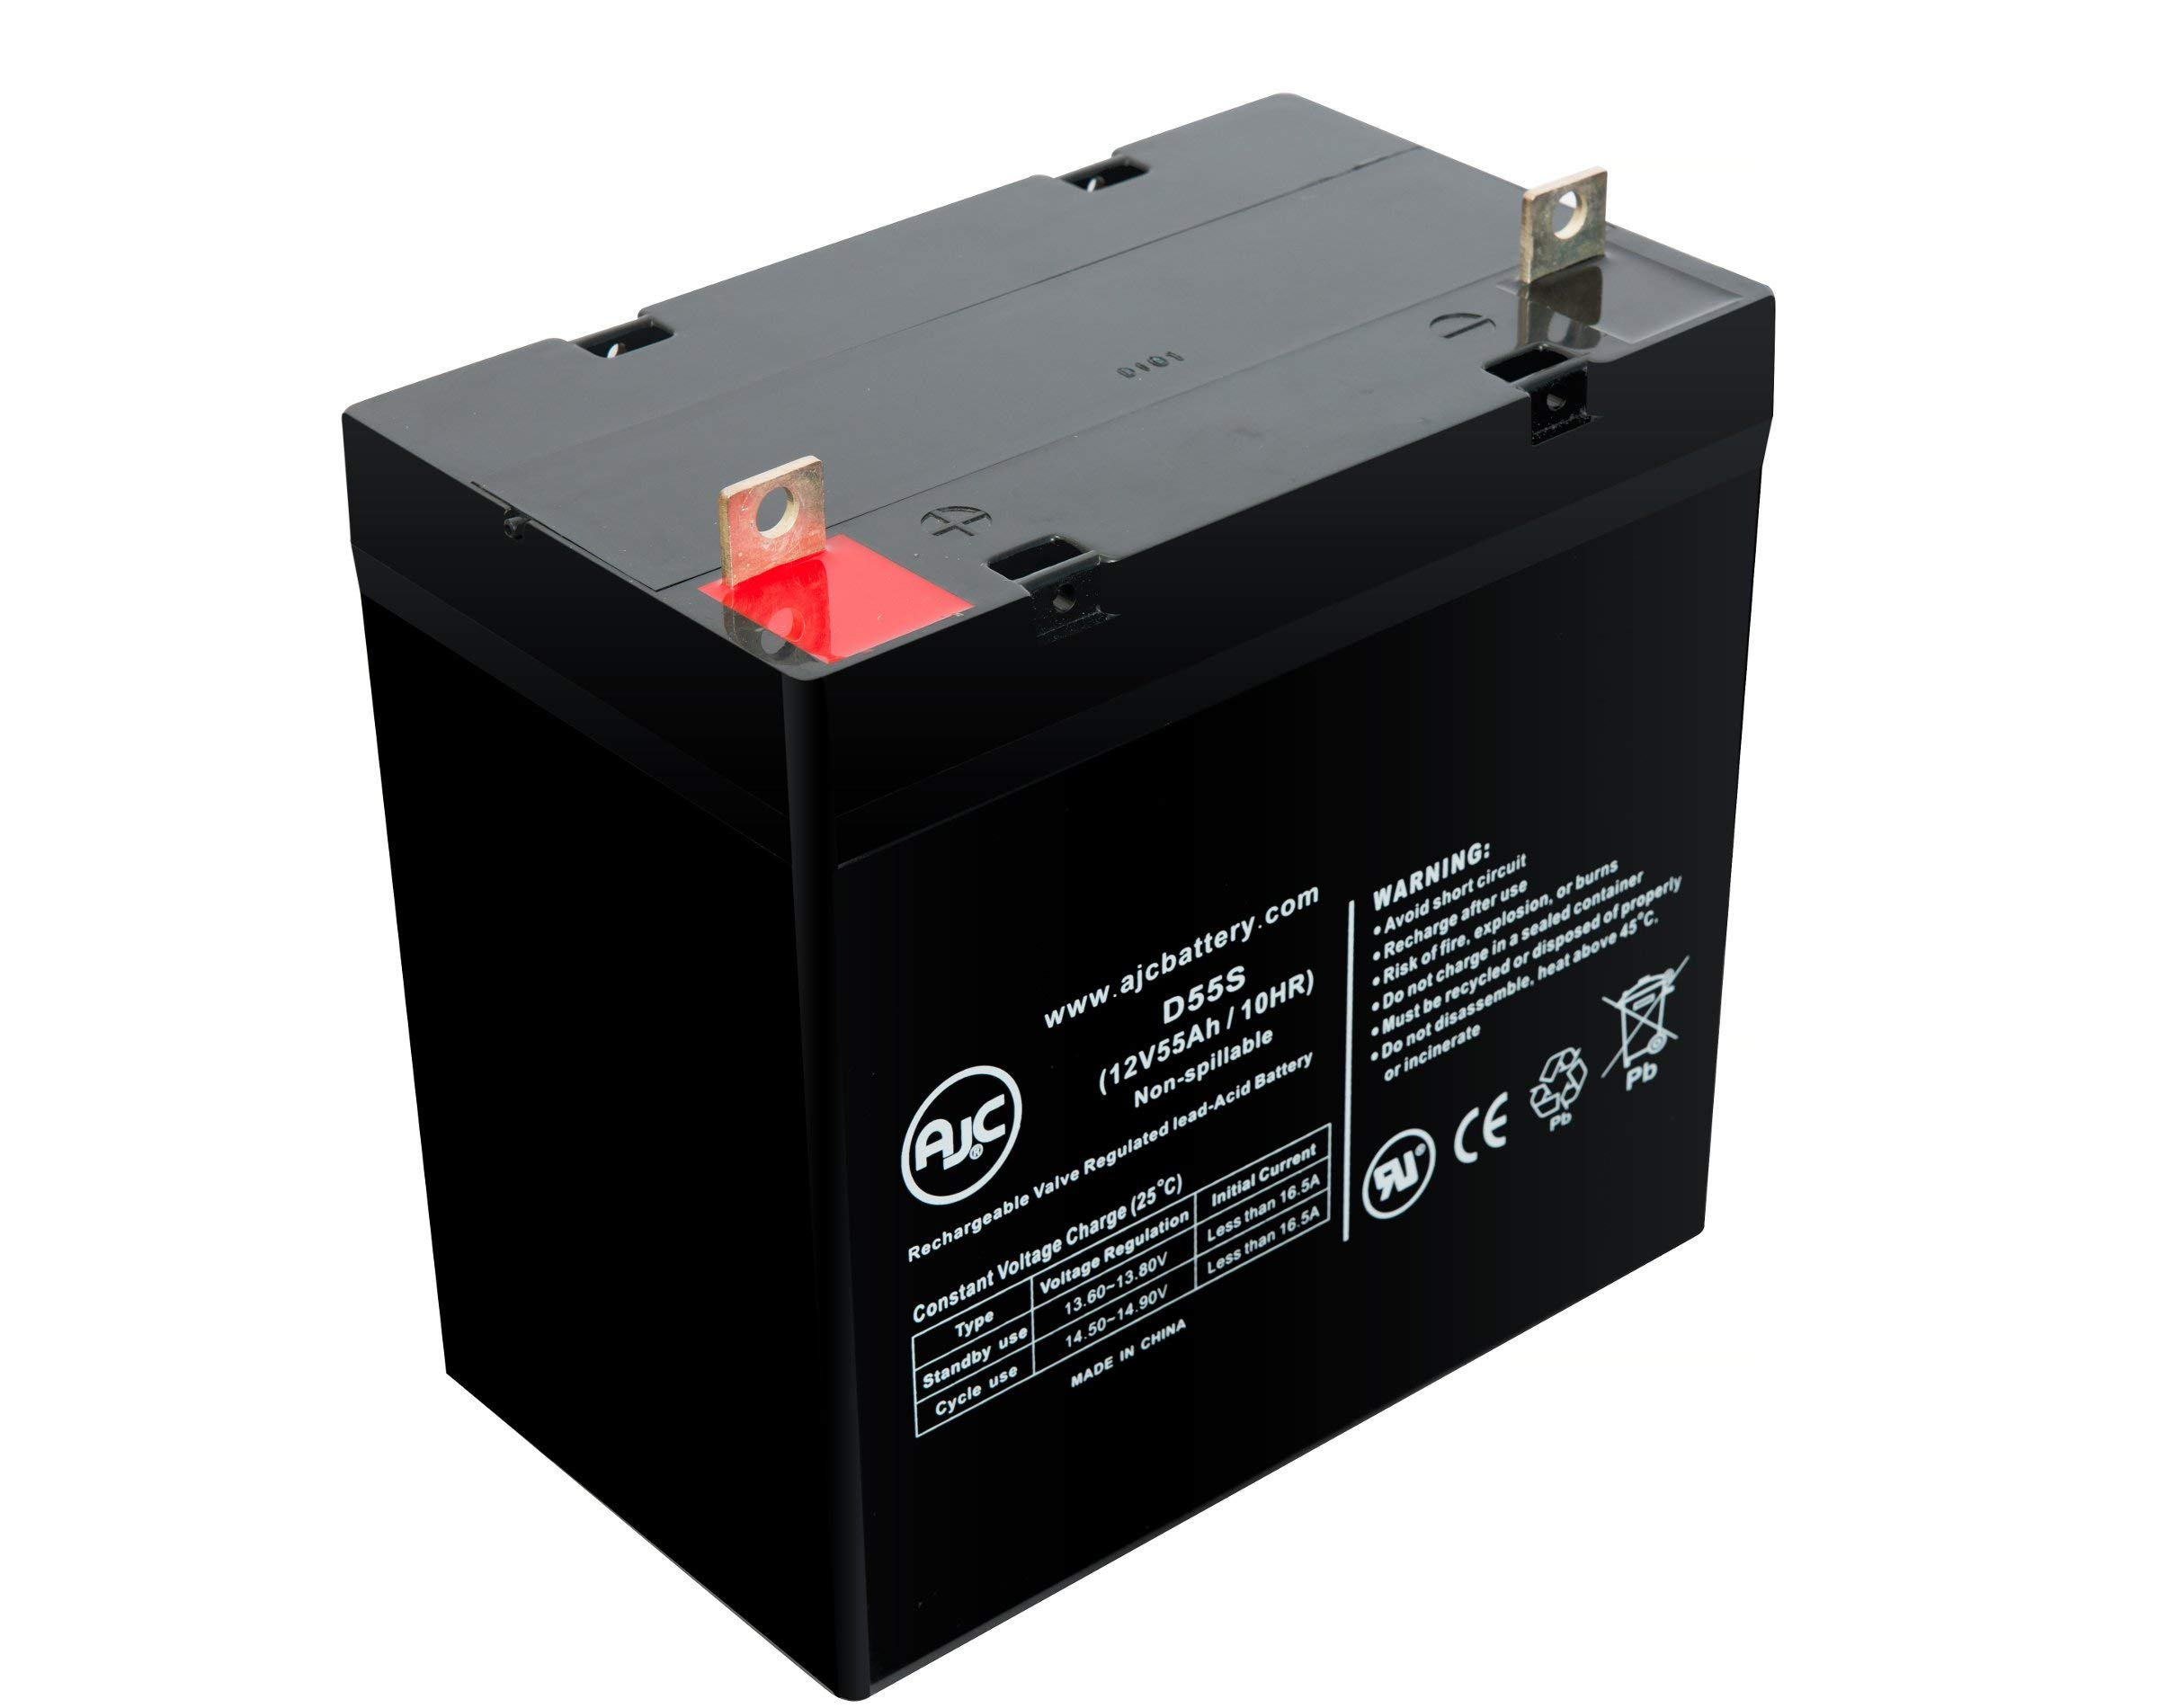 This is an AJC Brand Replacement Jolt SA1245 12V 5Ah UPS Battery